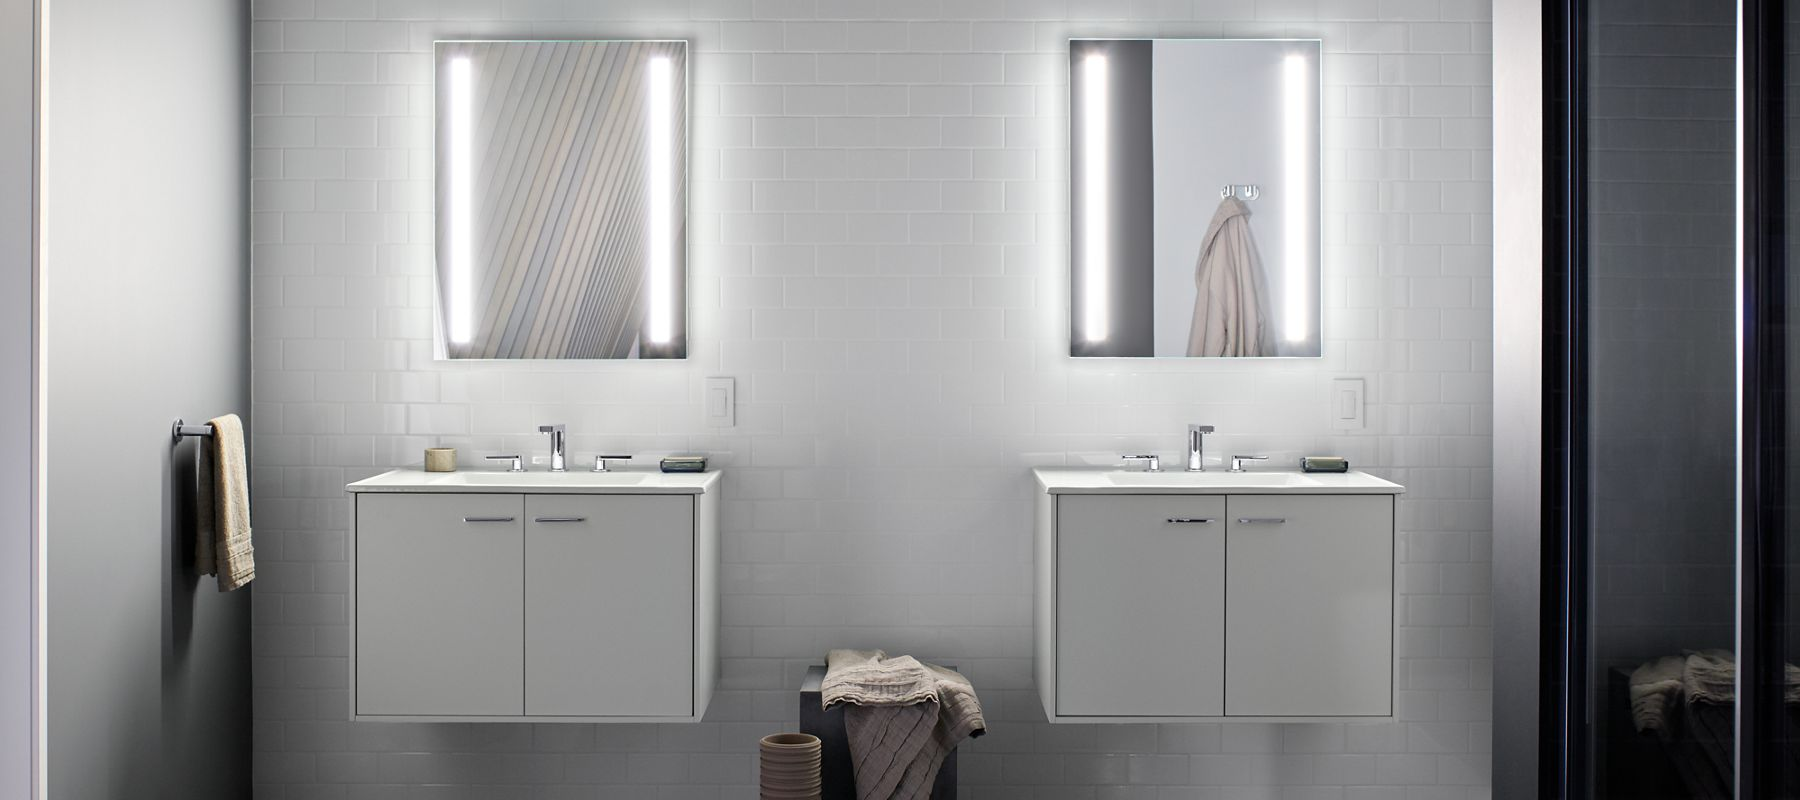 Better Light. Better You.™. Verdera® Lighted Mirrors & Medicine Cabinets